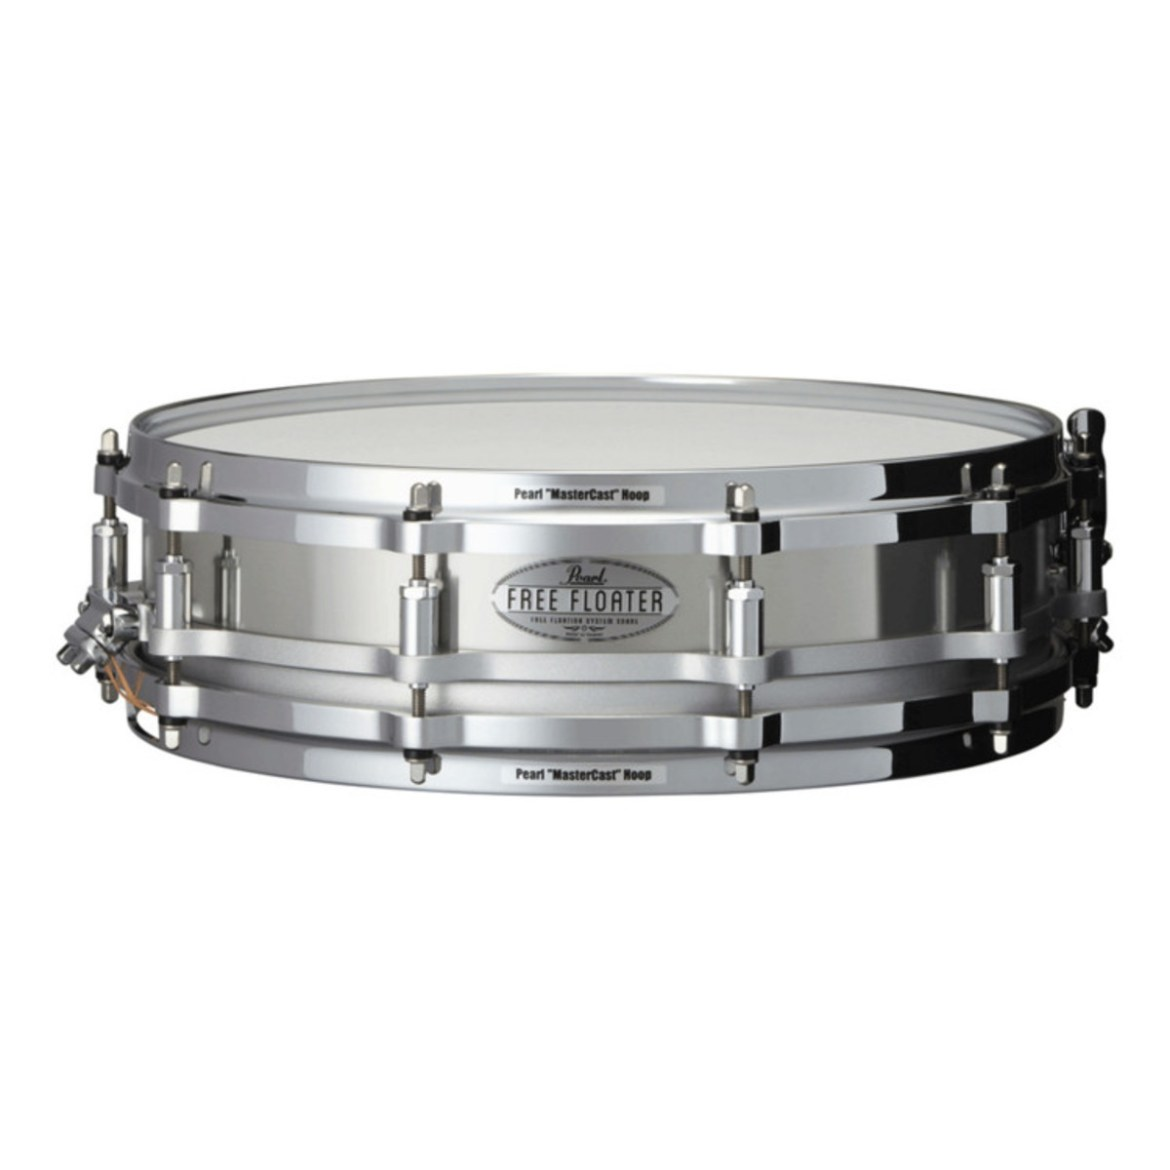 Pearl FTSS1435 Free Floating 14 x 3.5 Snare Drum Steel